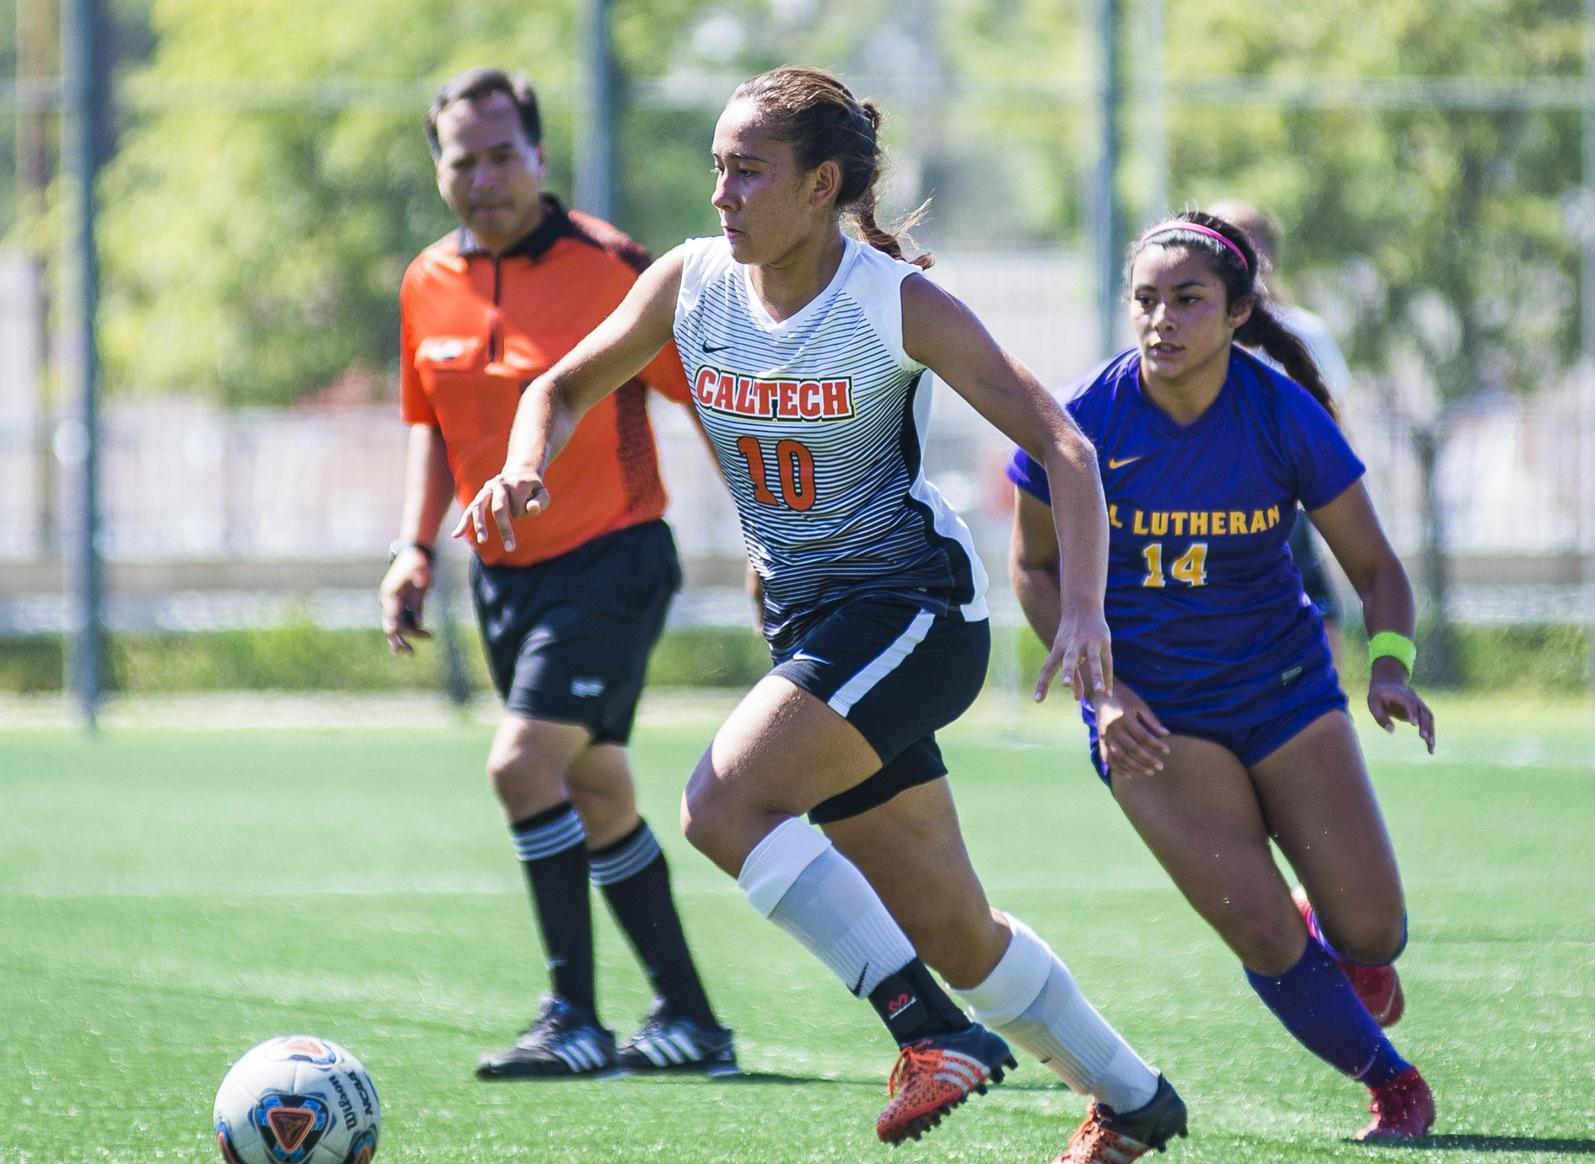 Women's Soccer Improves Against Pomona-Pitzer